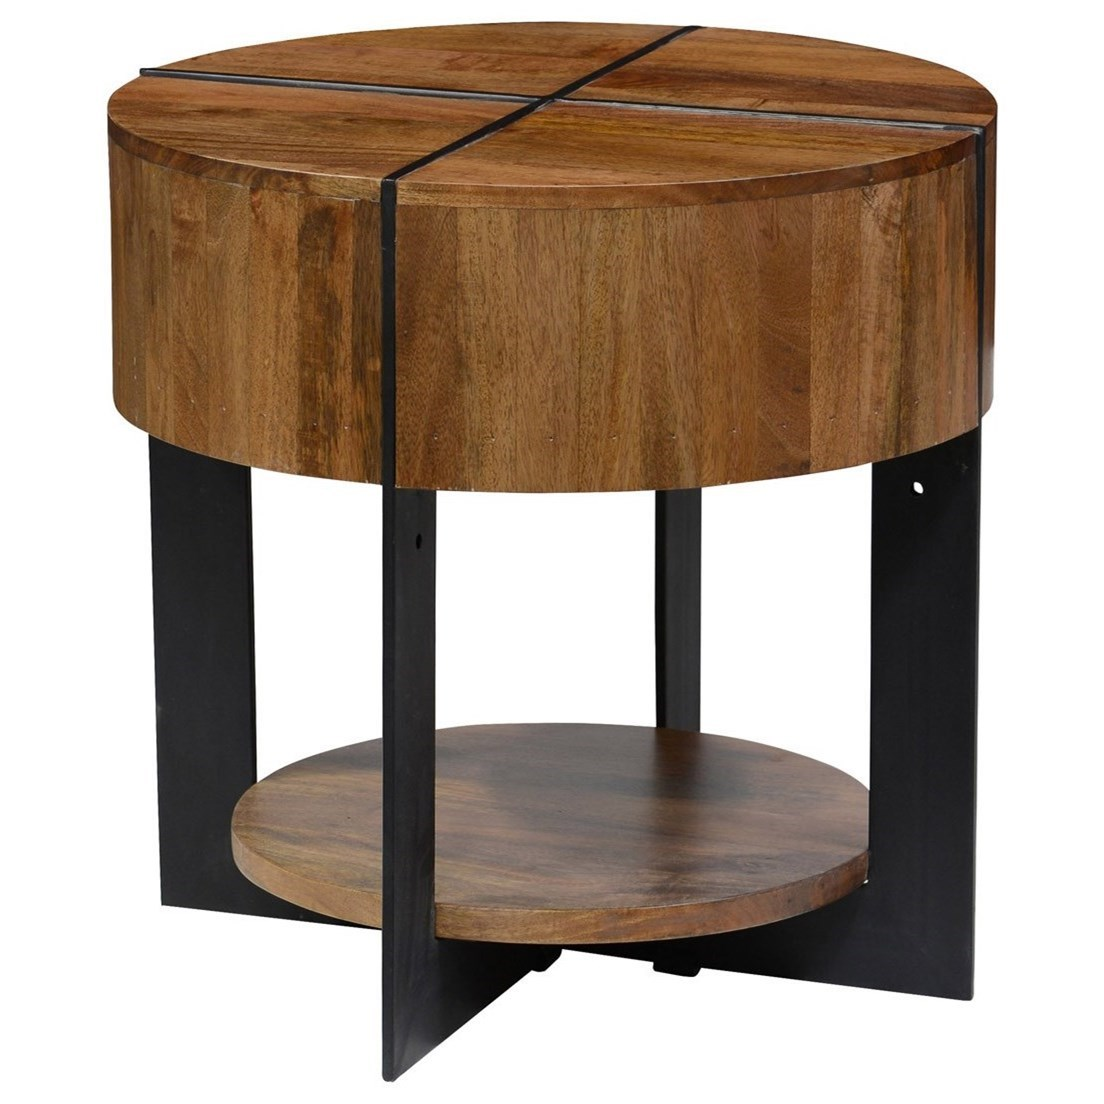 Classic home desmond 51010603 round mango wood end table for Classic home tables